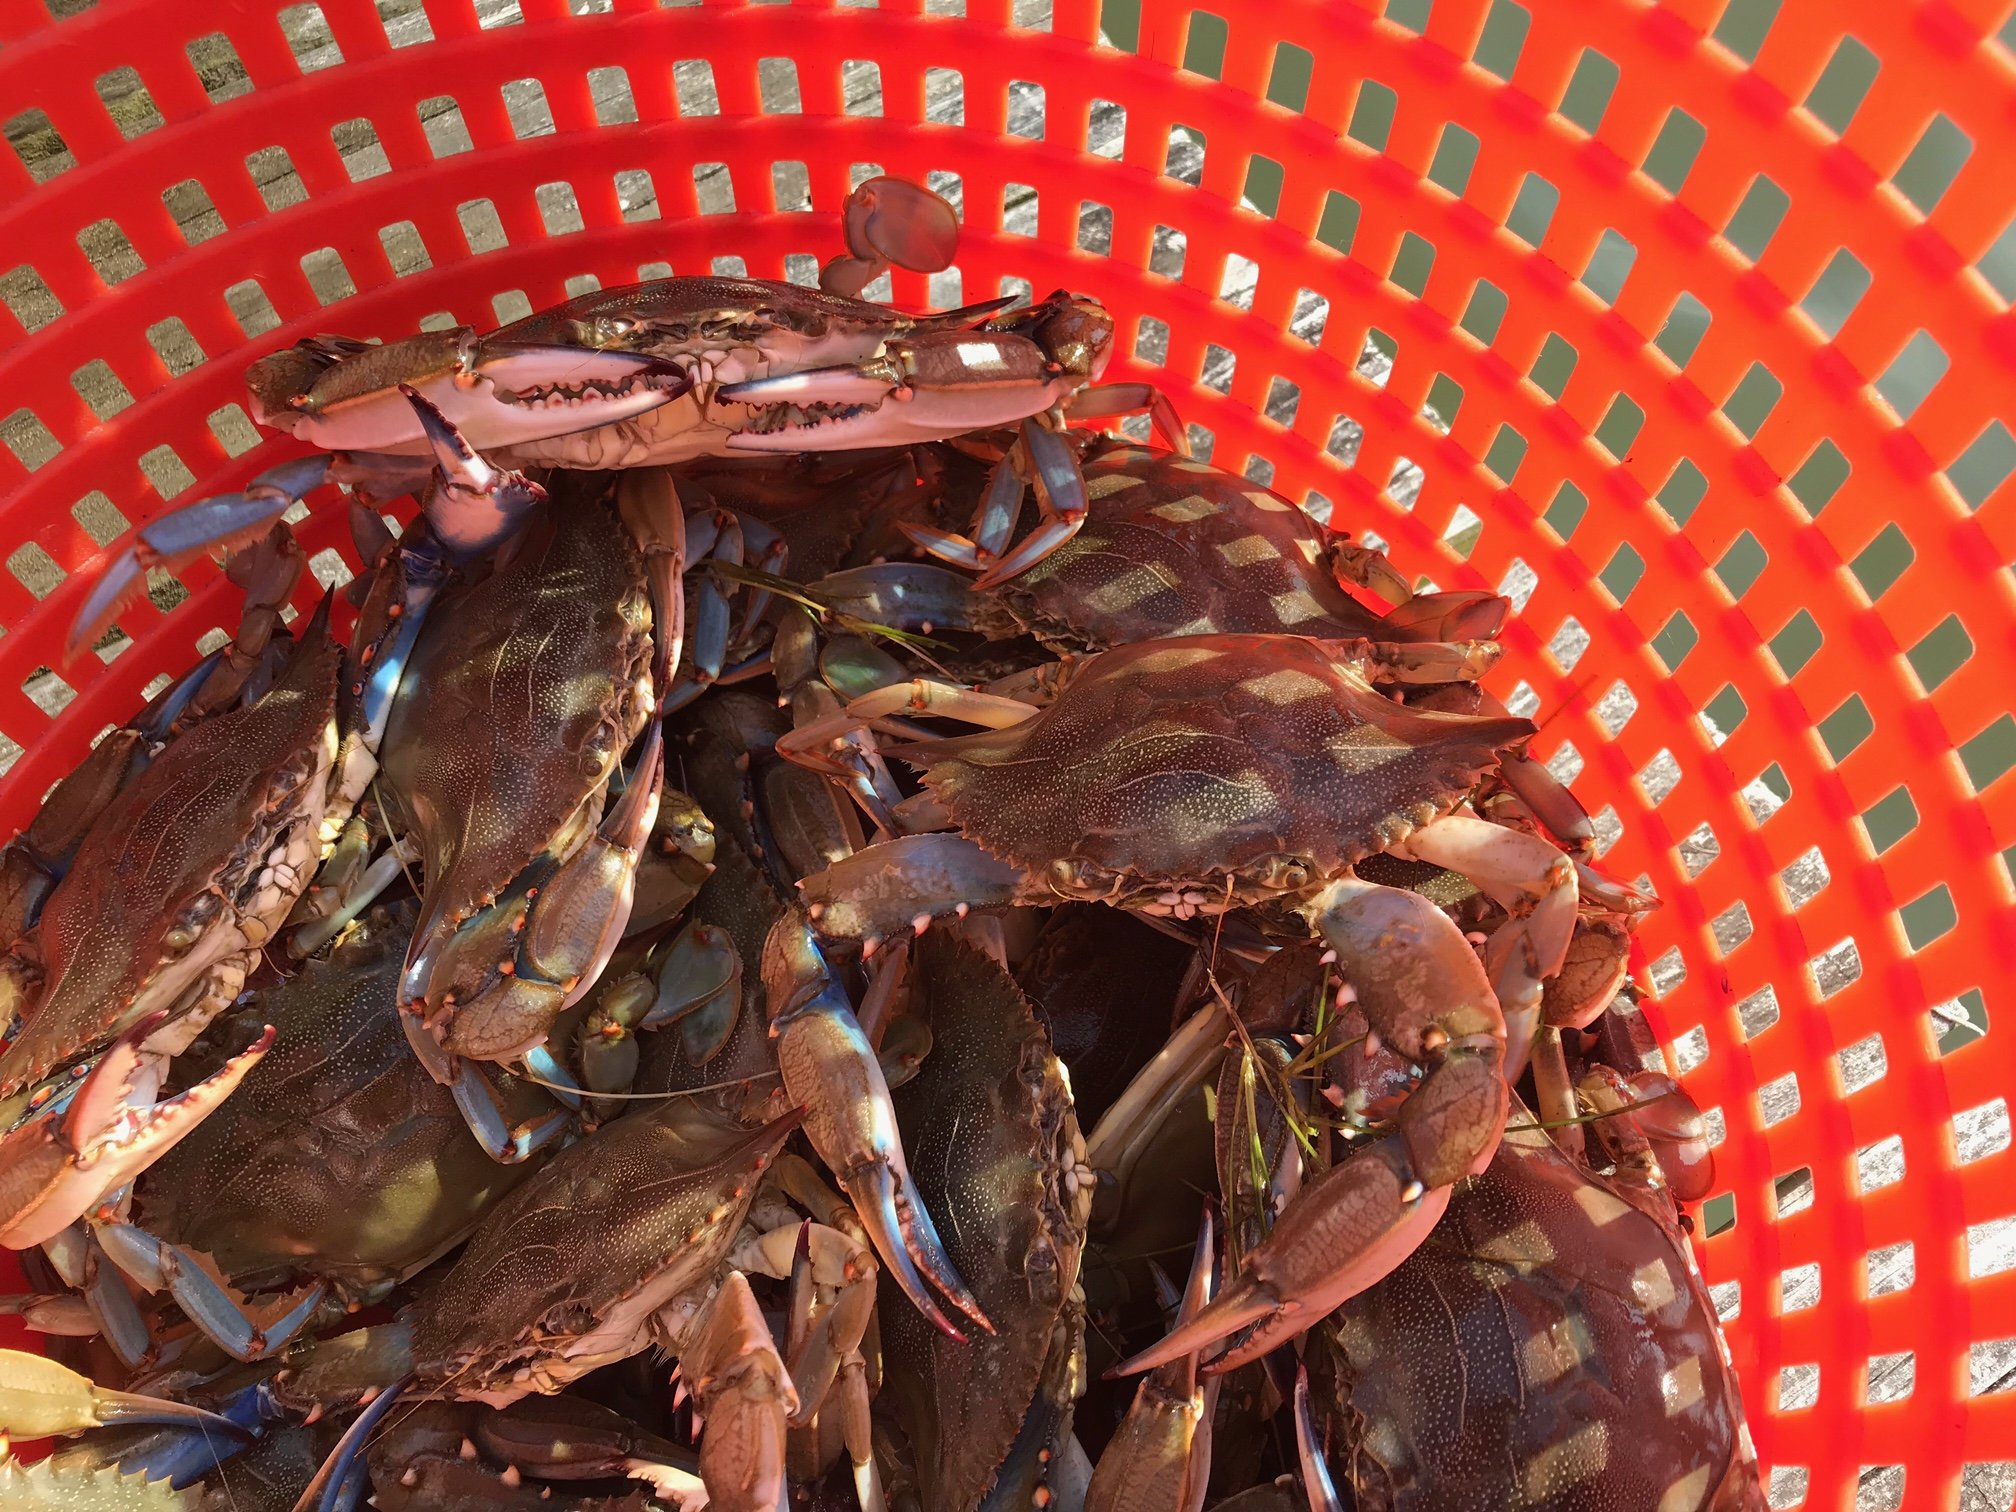 Enjoy a crab feast after crabbing trip